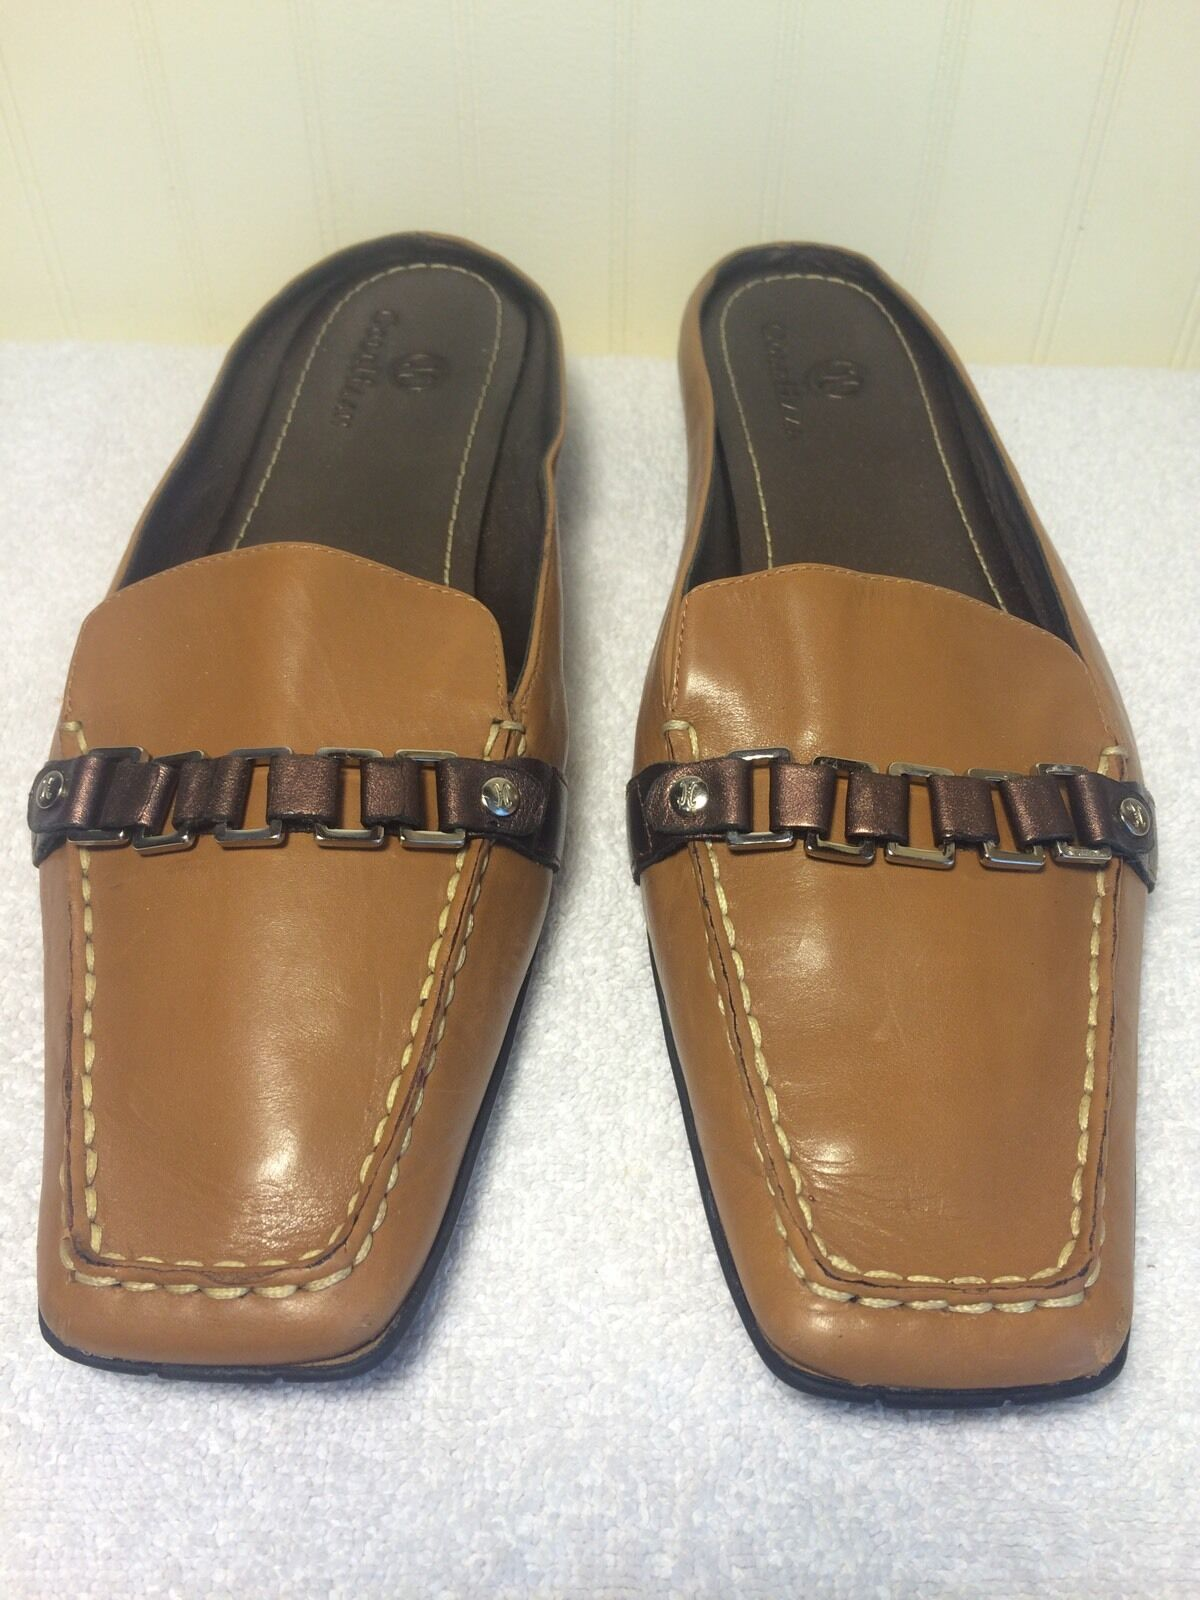 Women's Cole Haan Air Slip On Loafers US 7.5 B Tan Brown Casual Dress Shoes